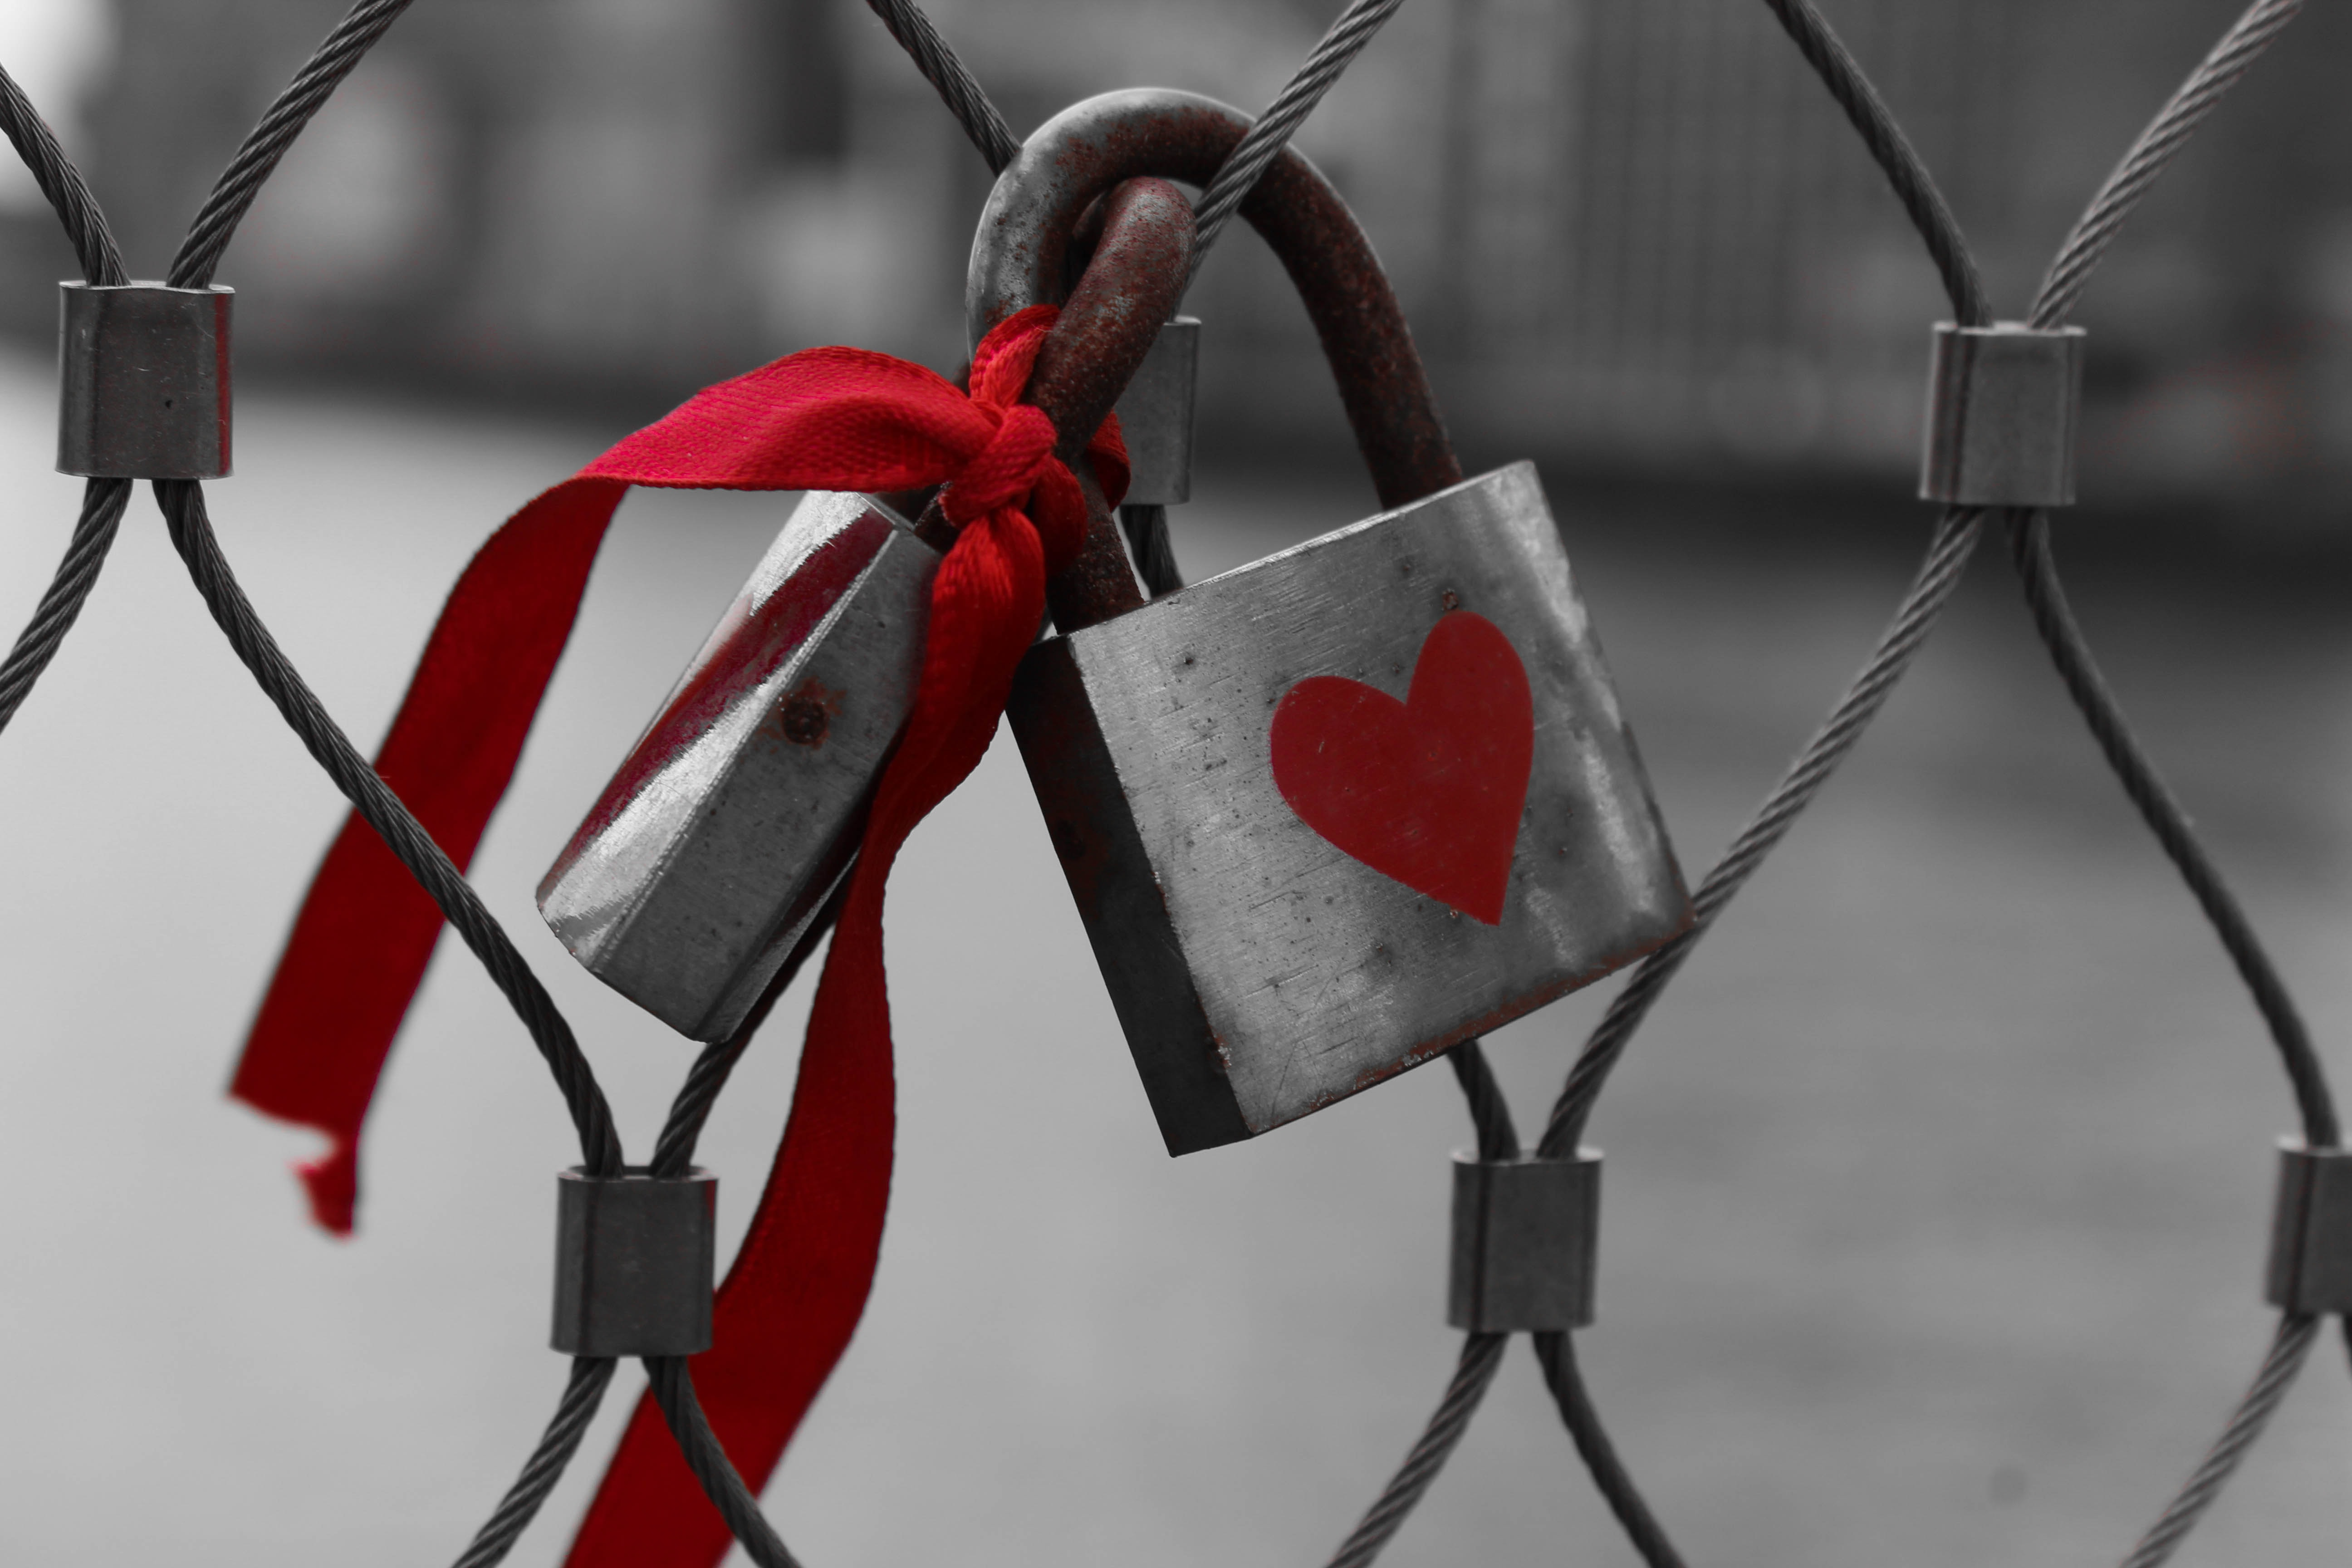 Padlock on a wire fence has red heart painted on it and ribbon attached